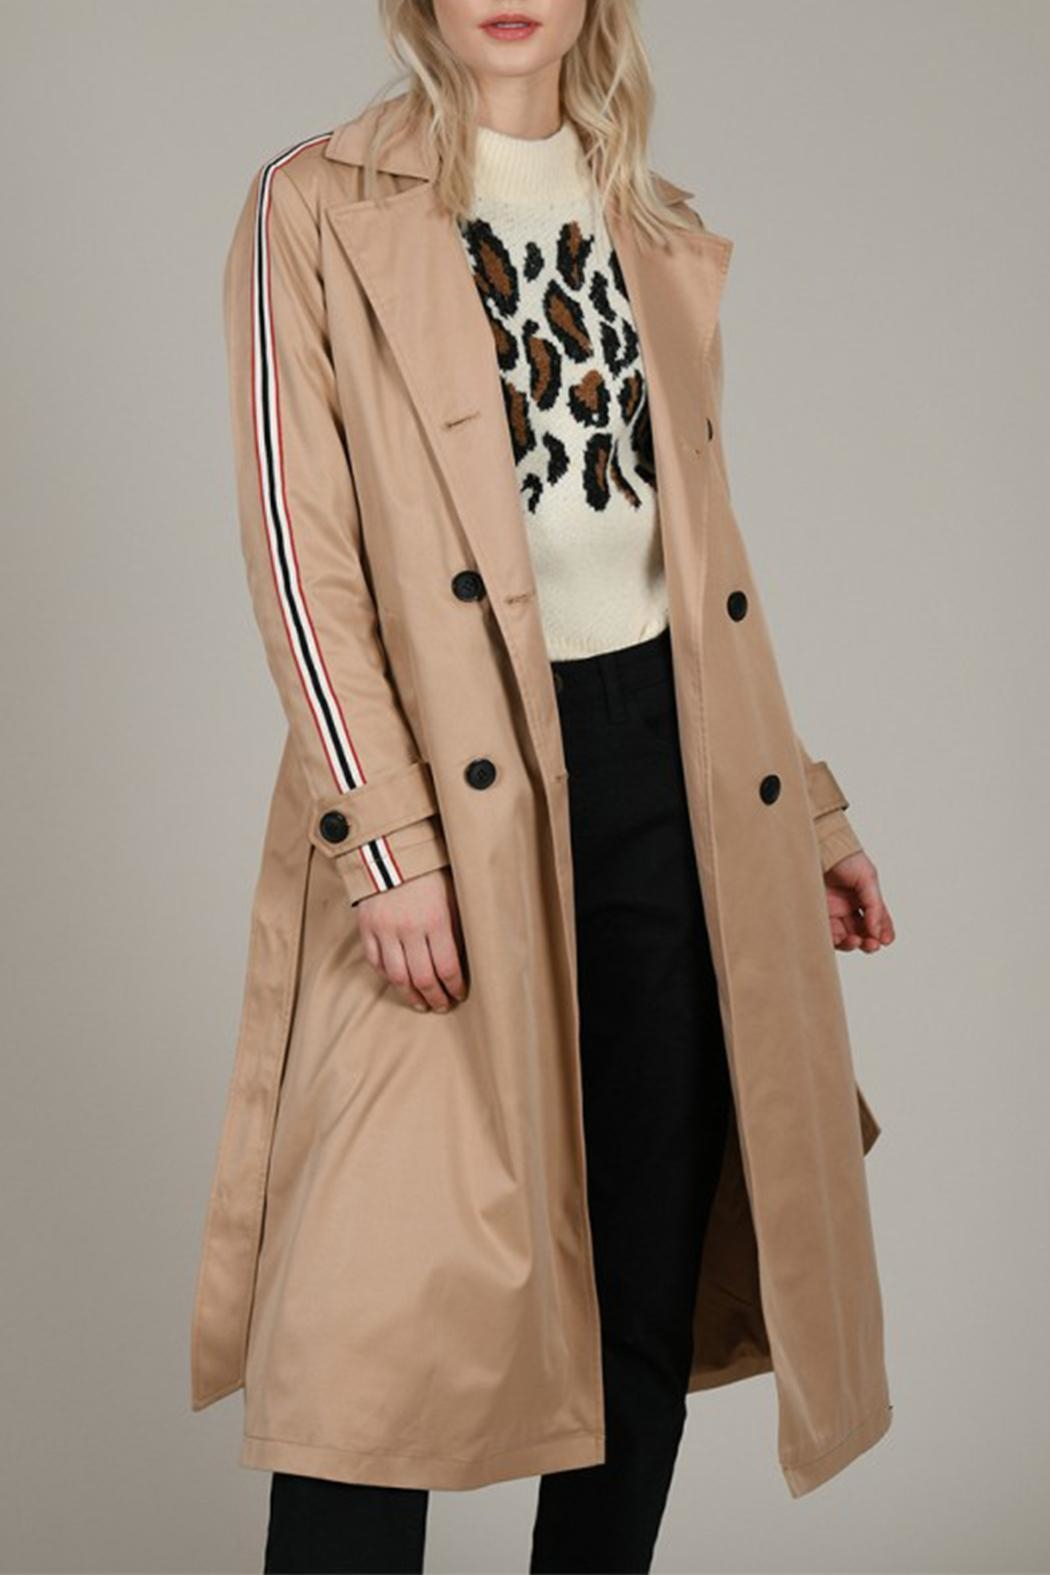 Molly Bracken Band Trench Coat - Main Image